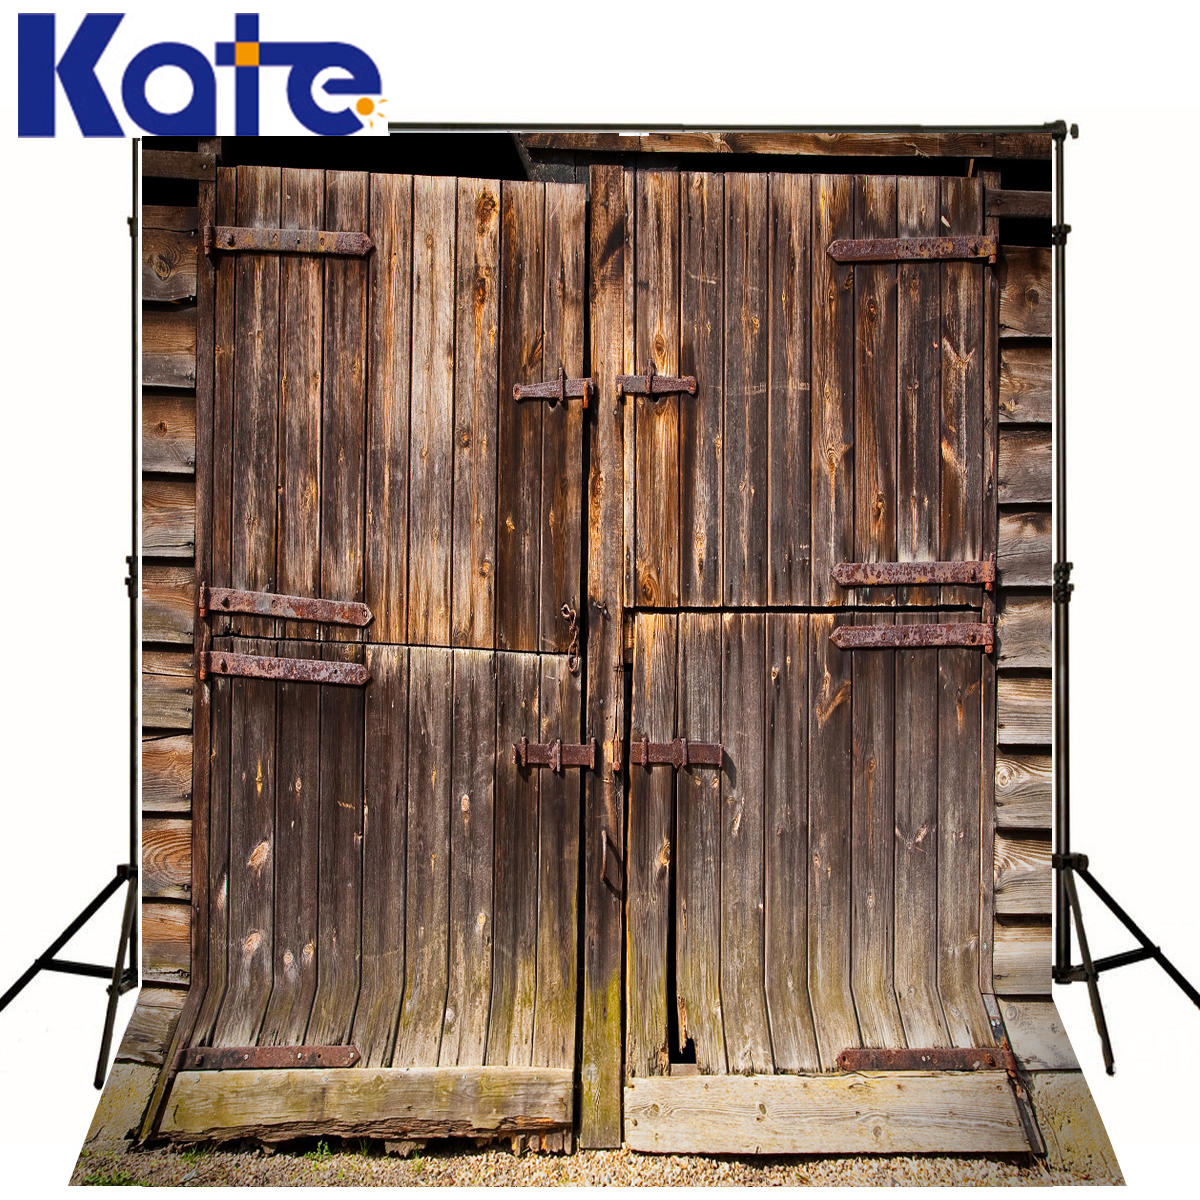 KATE Photography Backdrops Wooden Door  Backdrop Vintage Wood Backdrop Children Photo Background for Newborn Photography Studio kate photo background wedding backdrop pink photography backdrops vintage wood floor background for photography studio